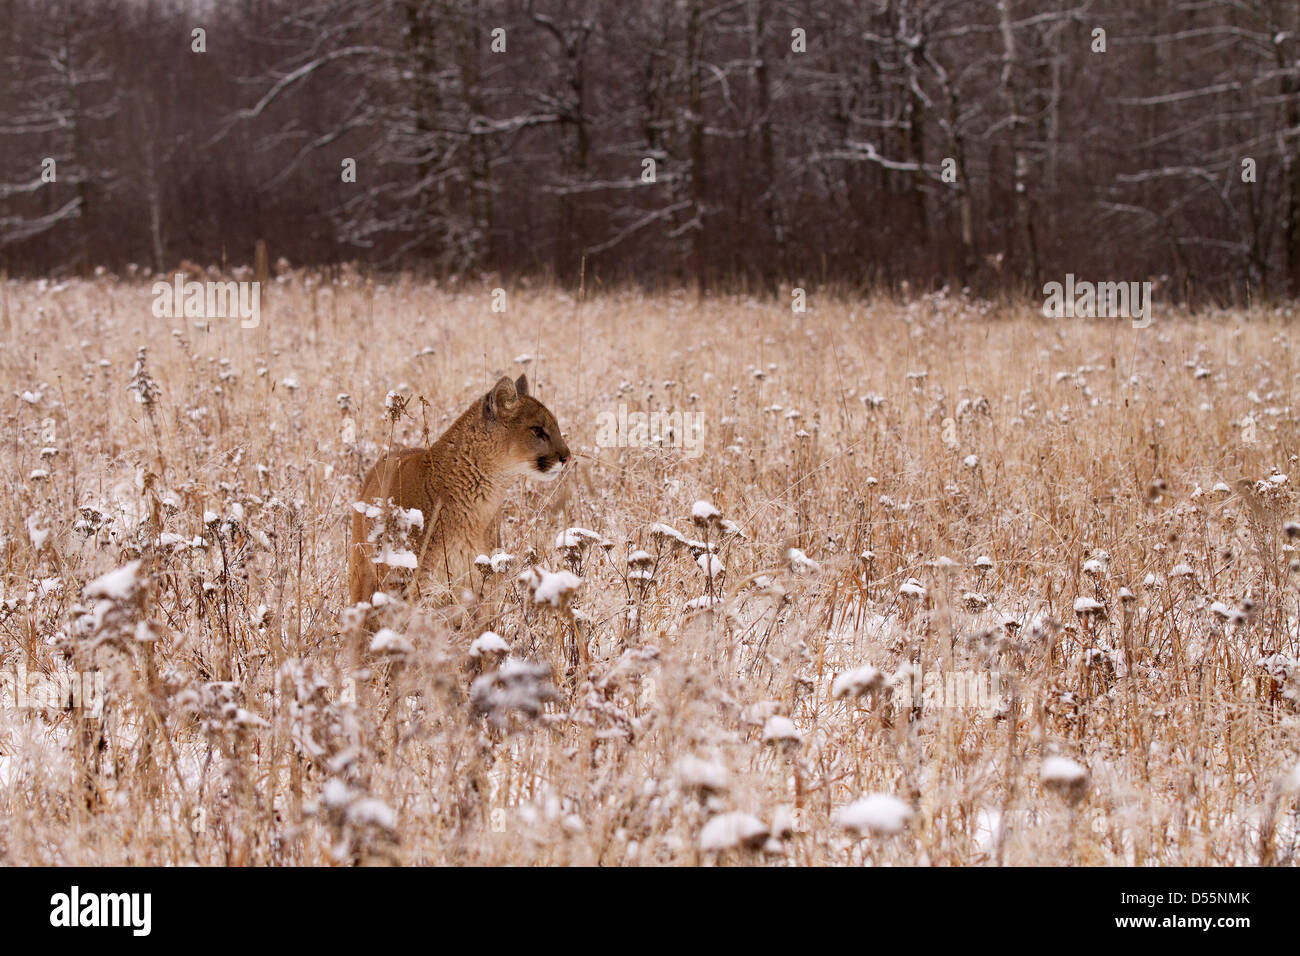 Mountain Lion, Felis concolor in the fields - Stock Image